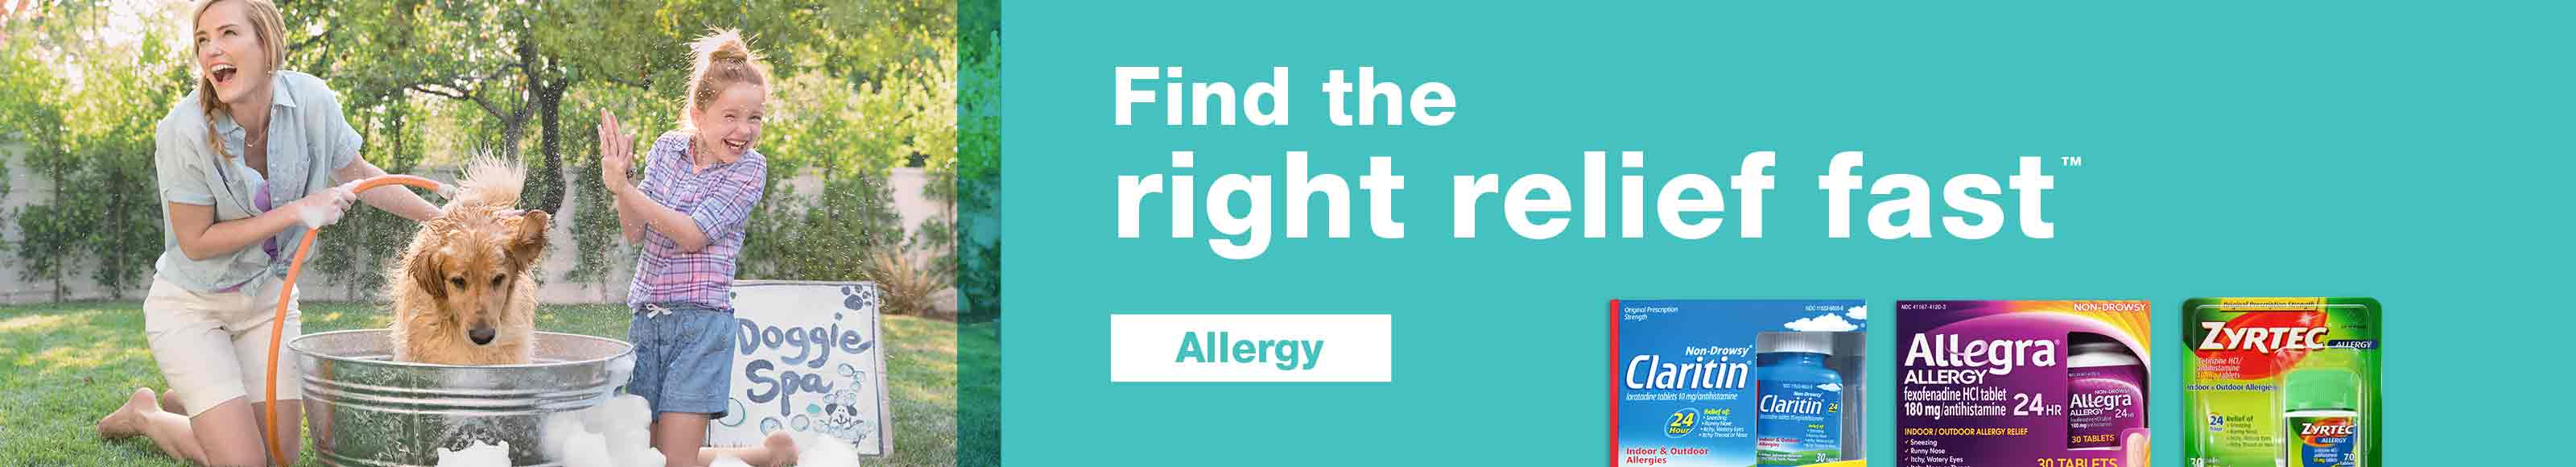 Find the right relief fast.(TM) Allergy